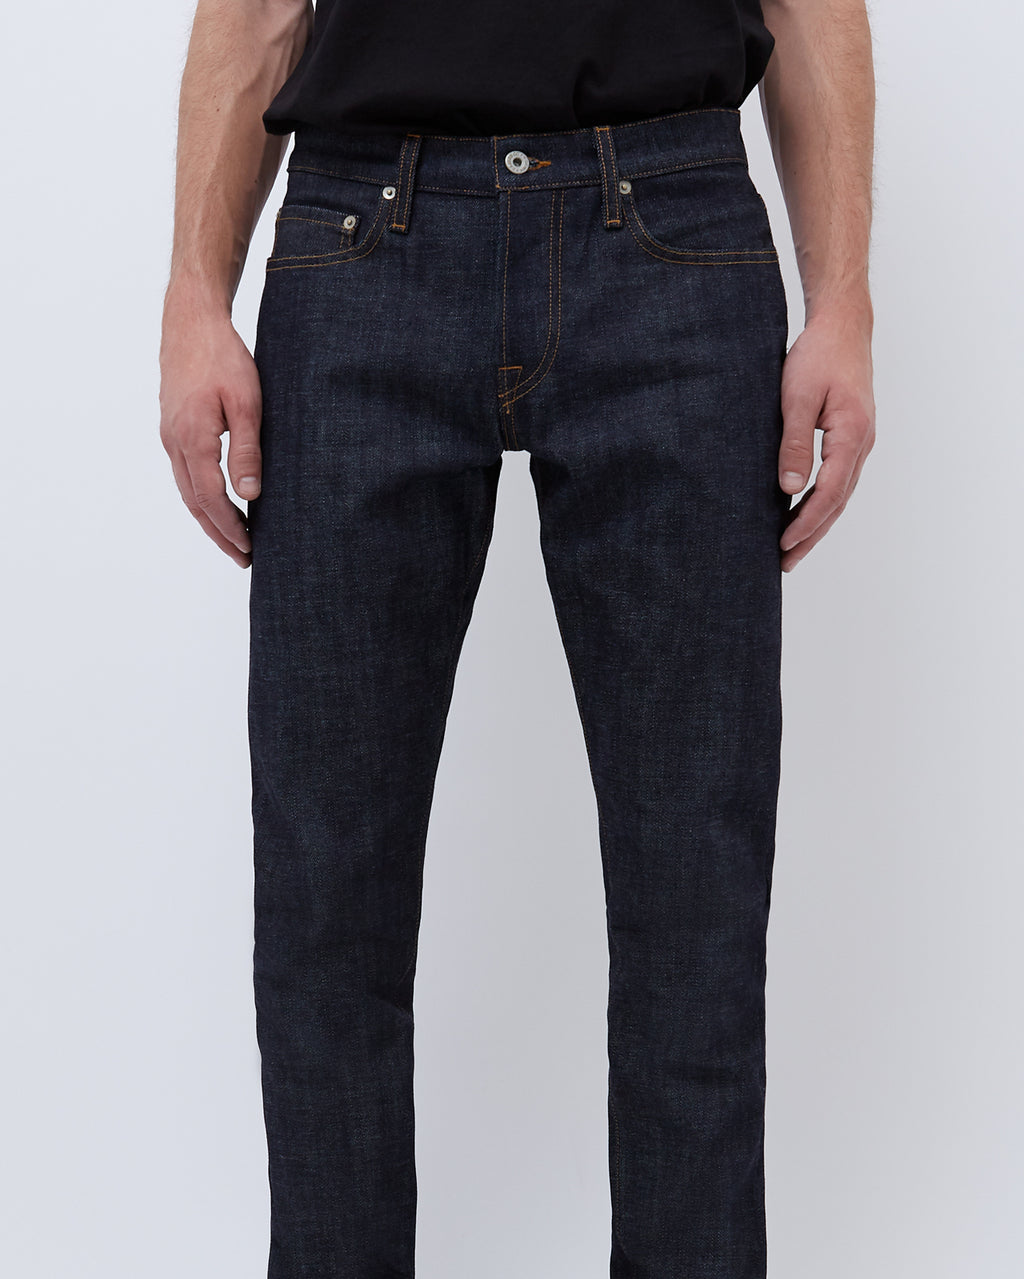 The Henley Jean in Indigo Raw Selvage